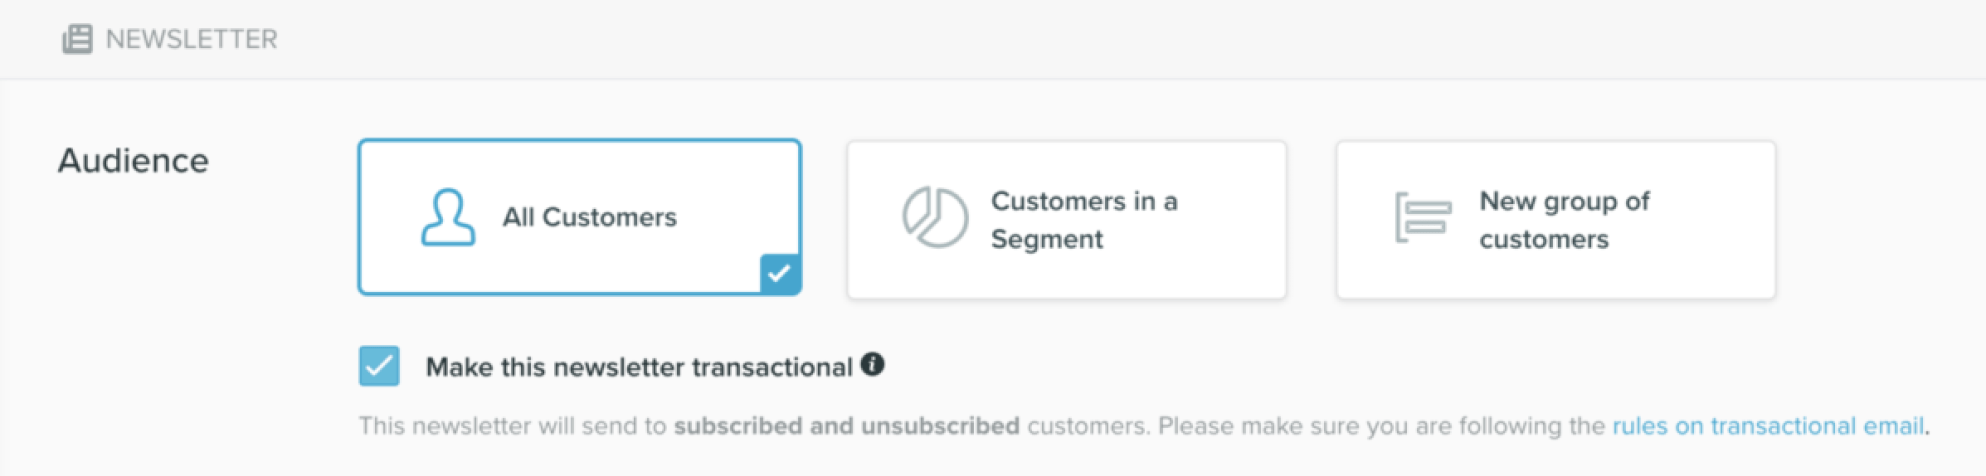 Transactional email newsletters